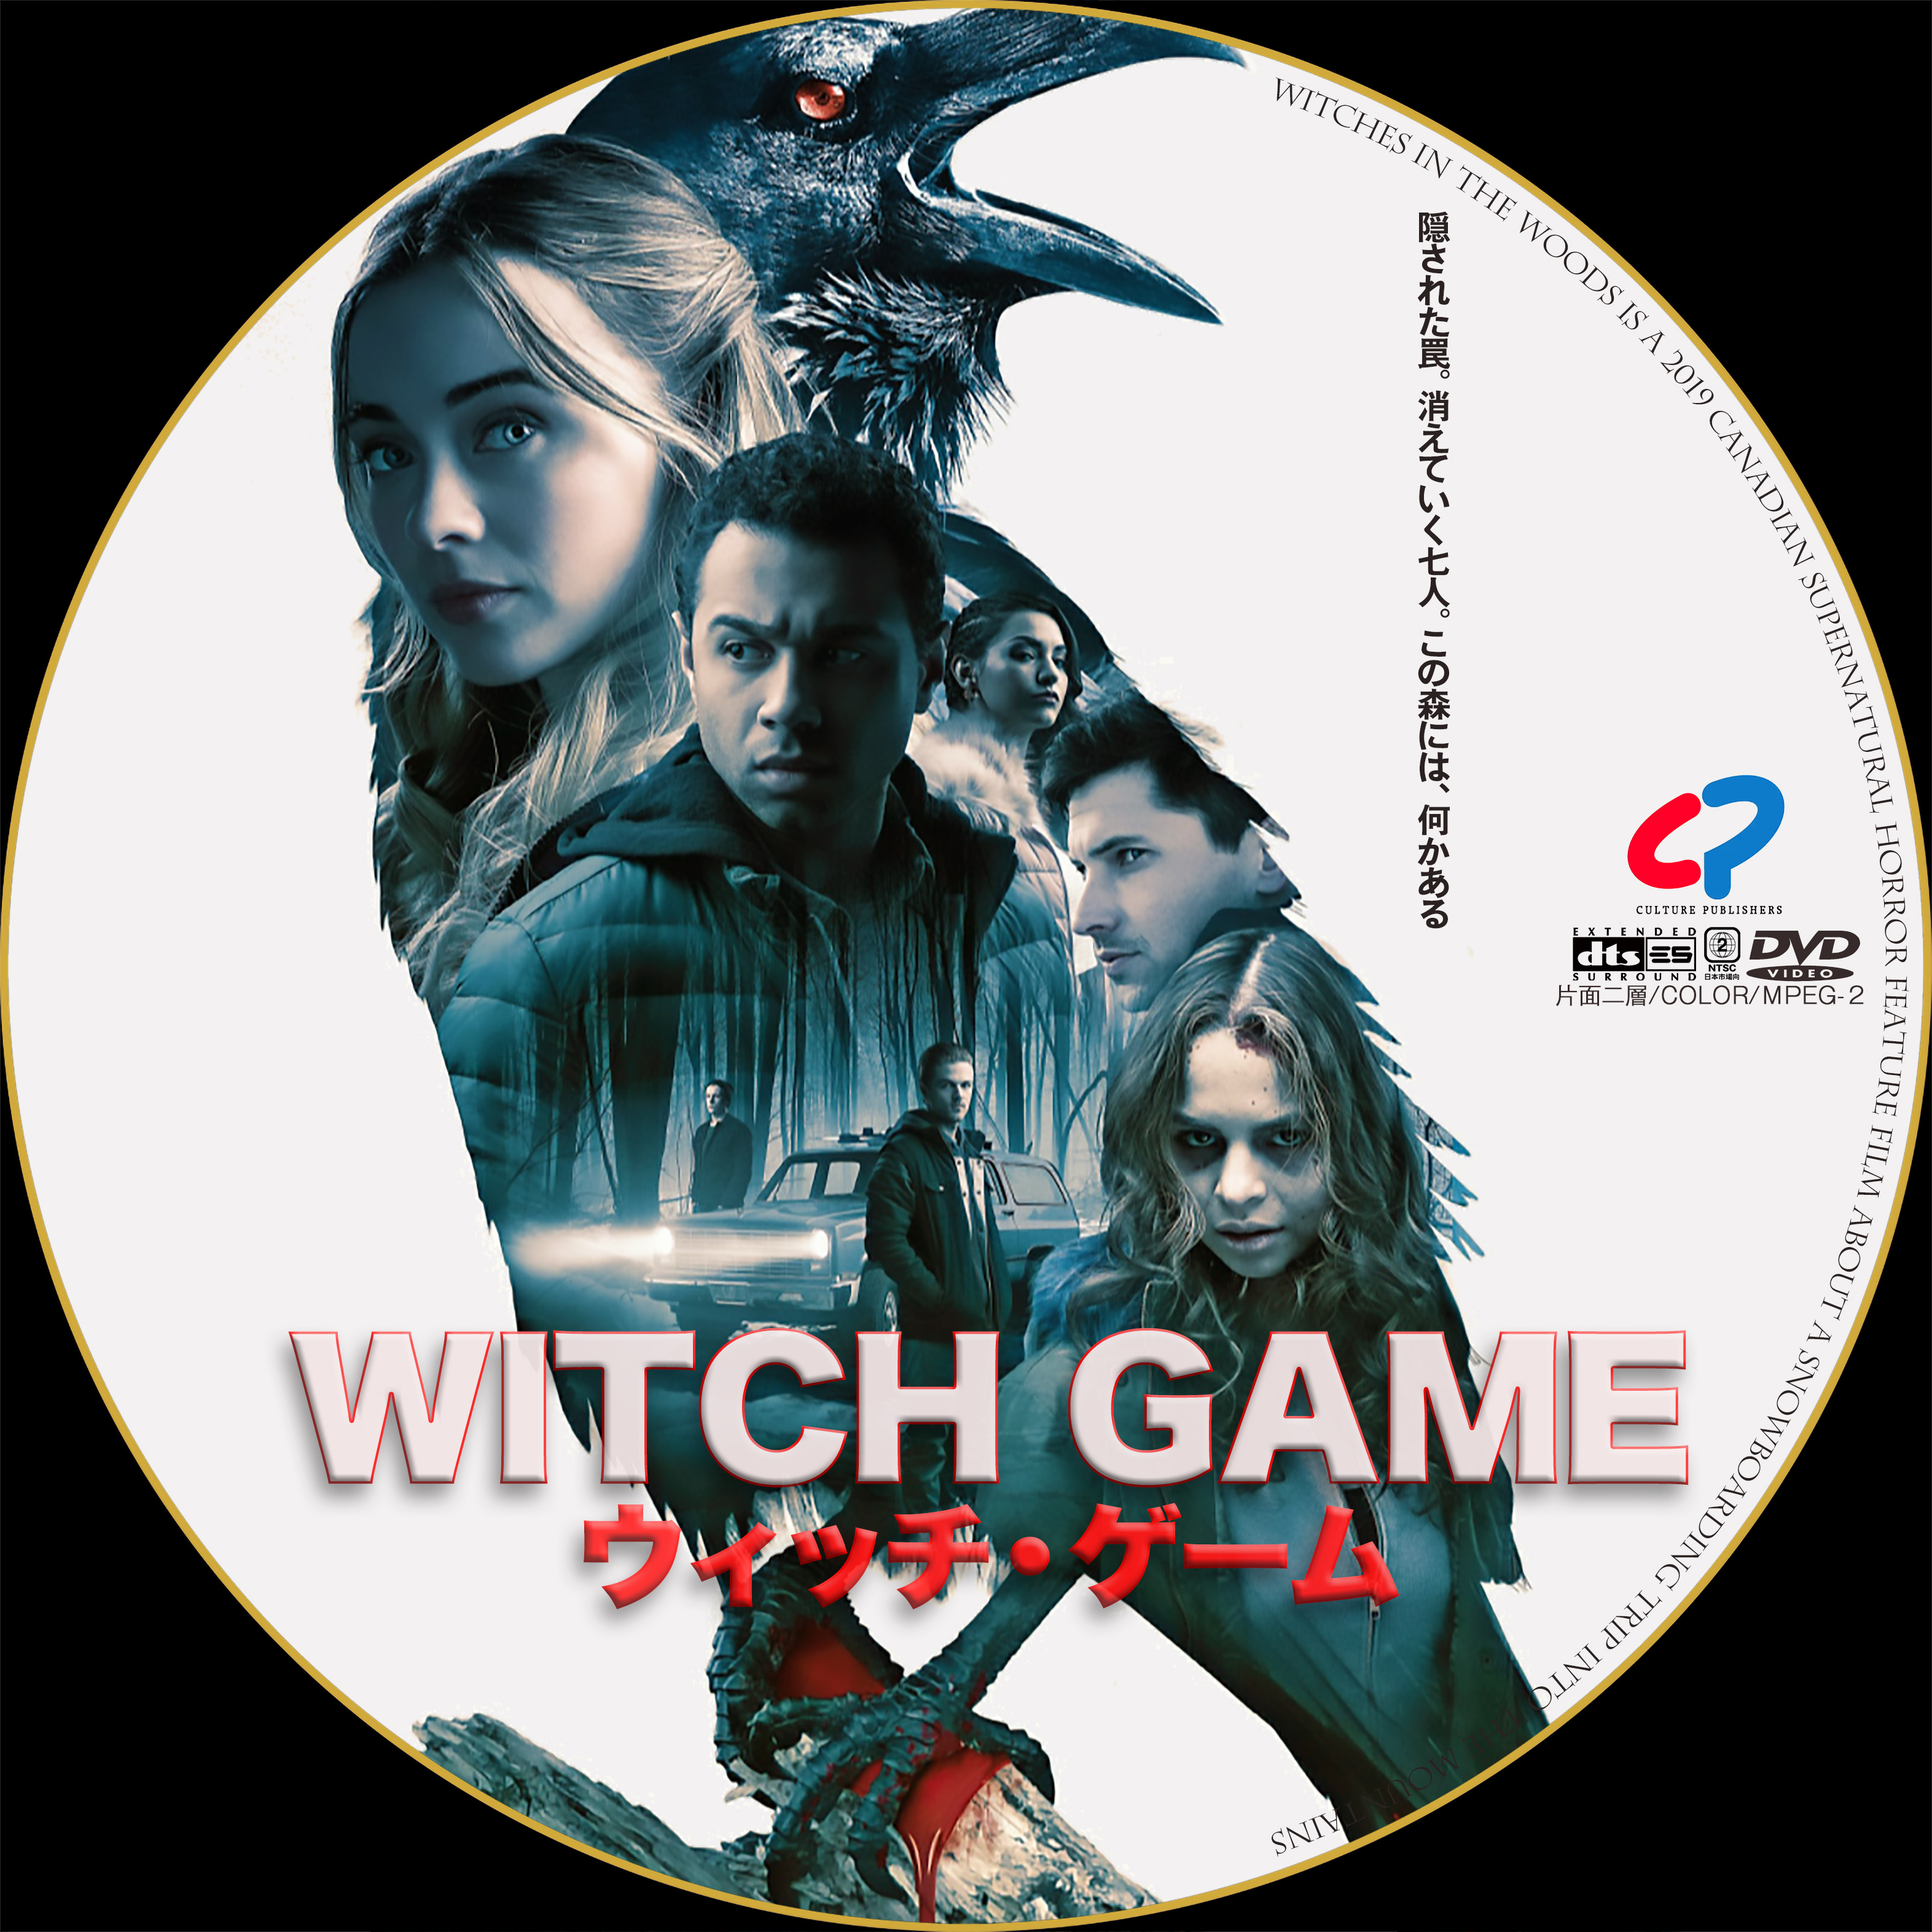 WITCH GAME/ウィッチ・ゲーム